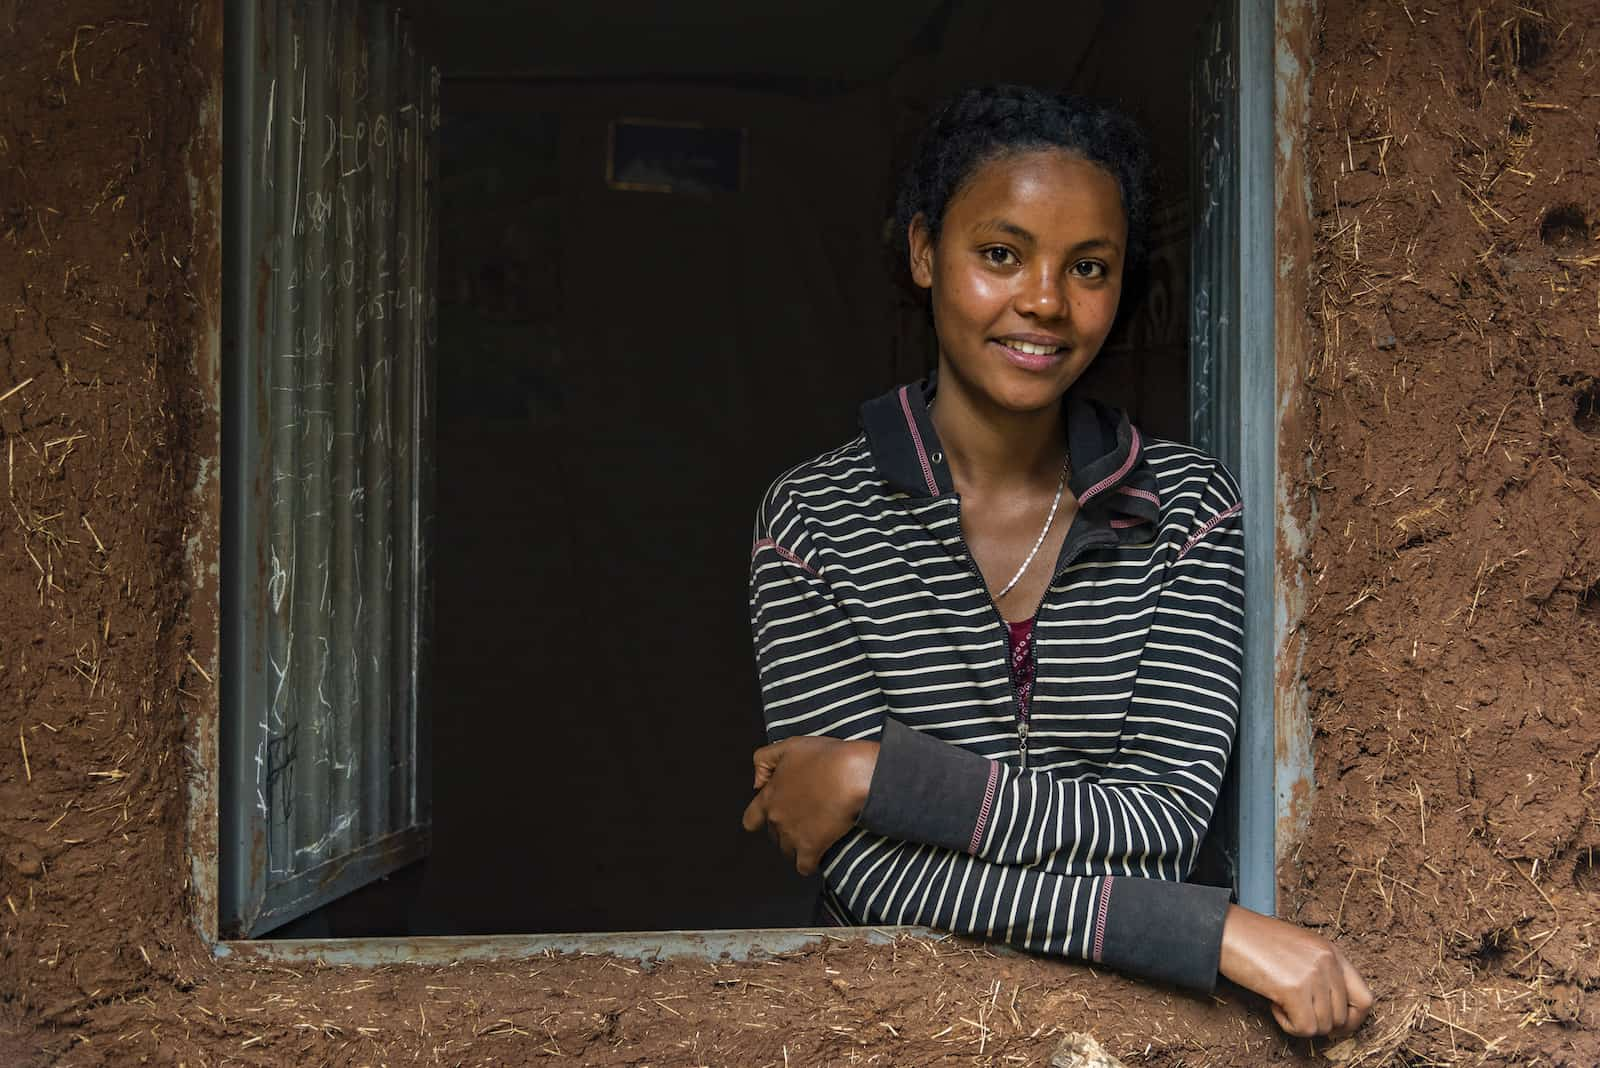 A woman stands in a window of a home made from adobe.